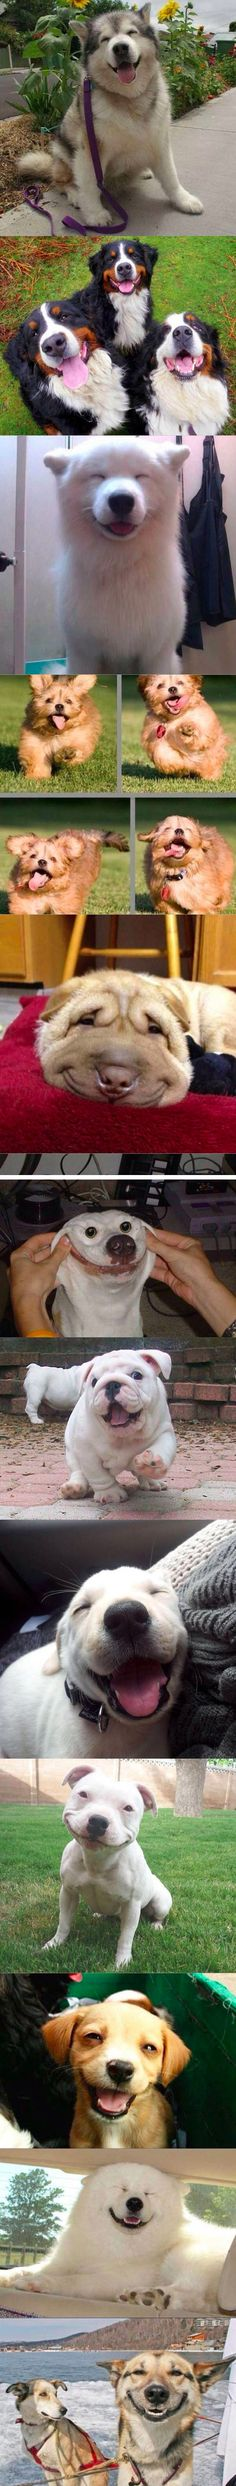 Everyone needs a smile on their face right about now, and these dogs should do the trick.